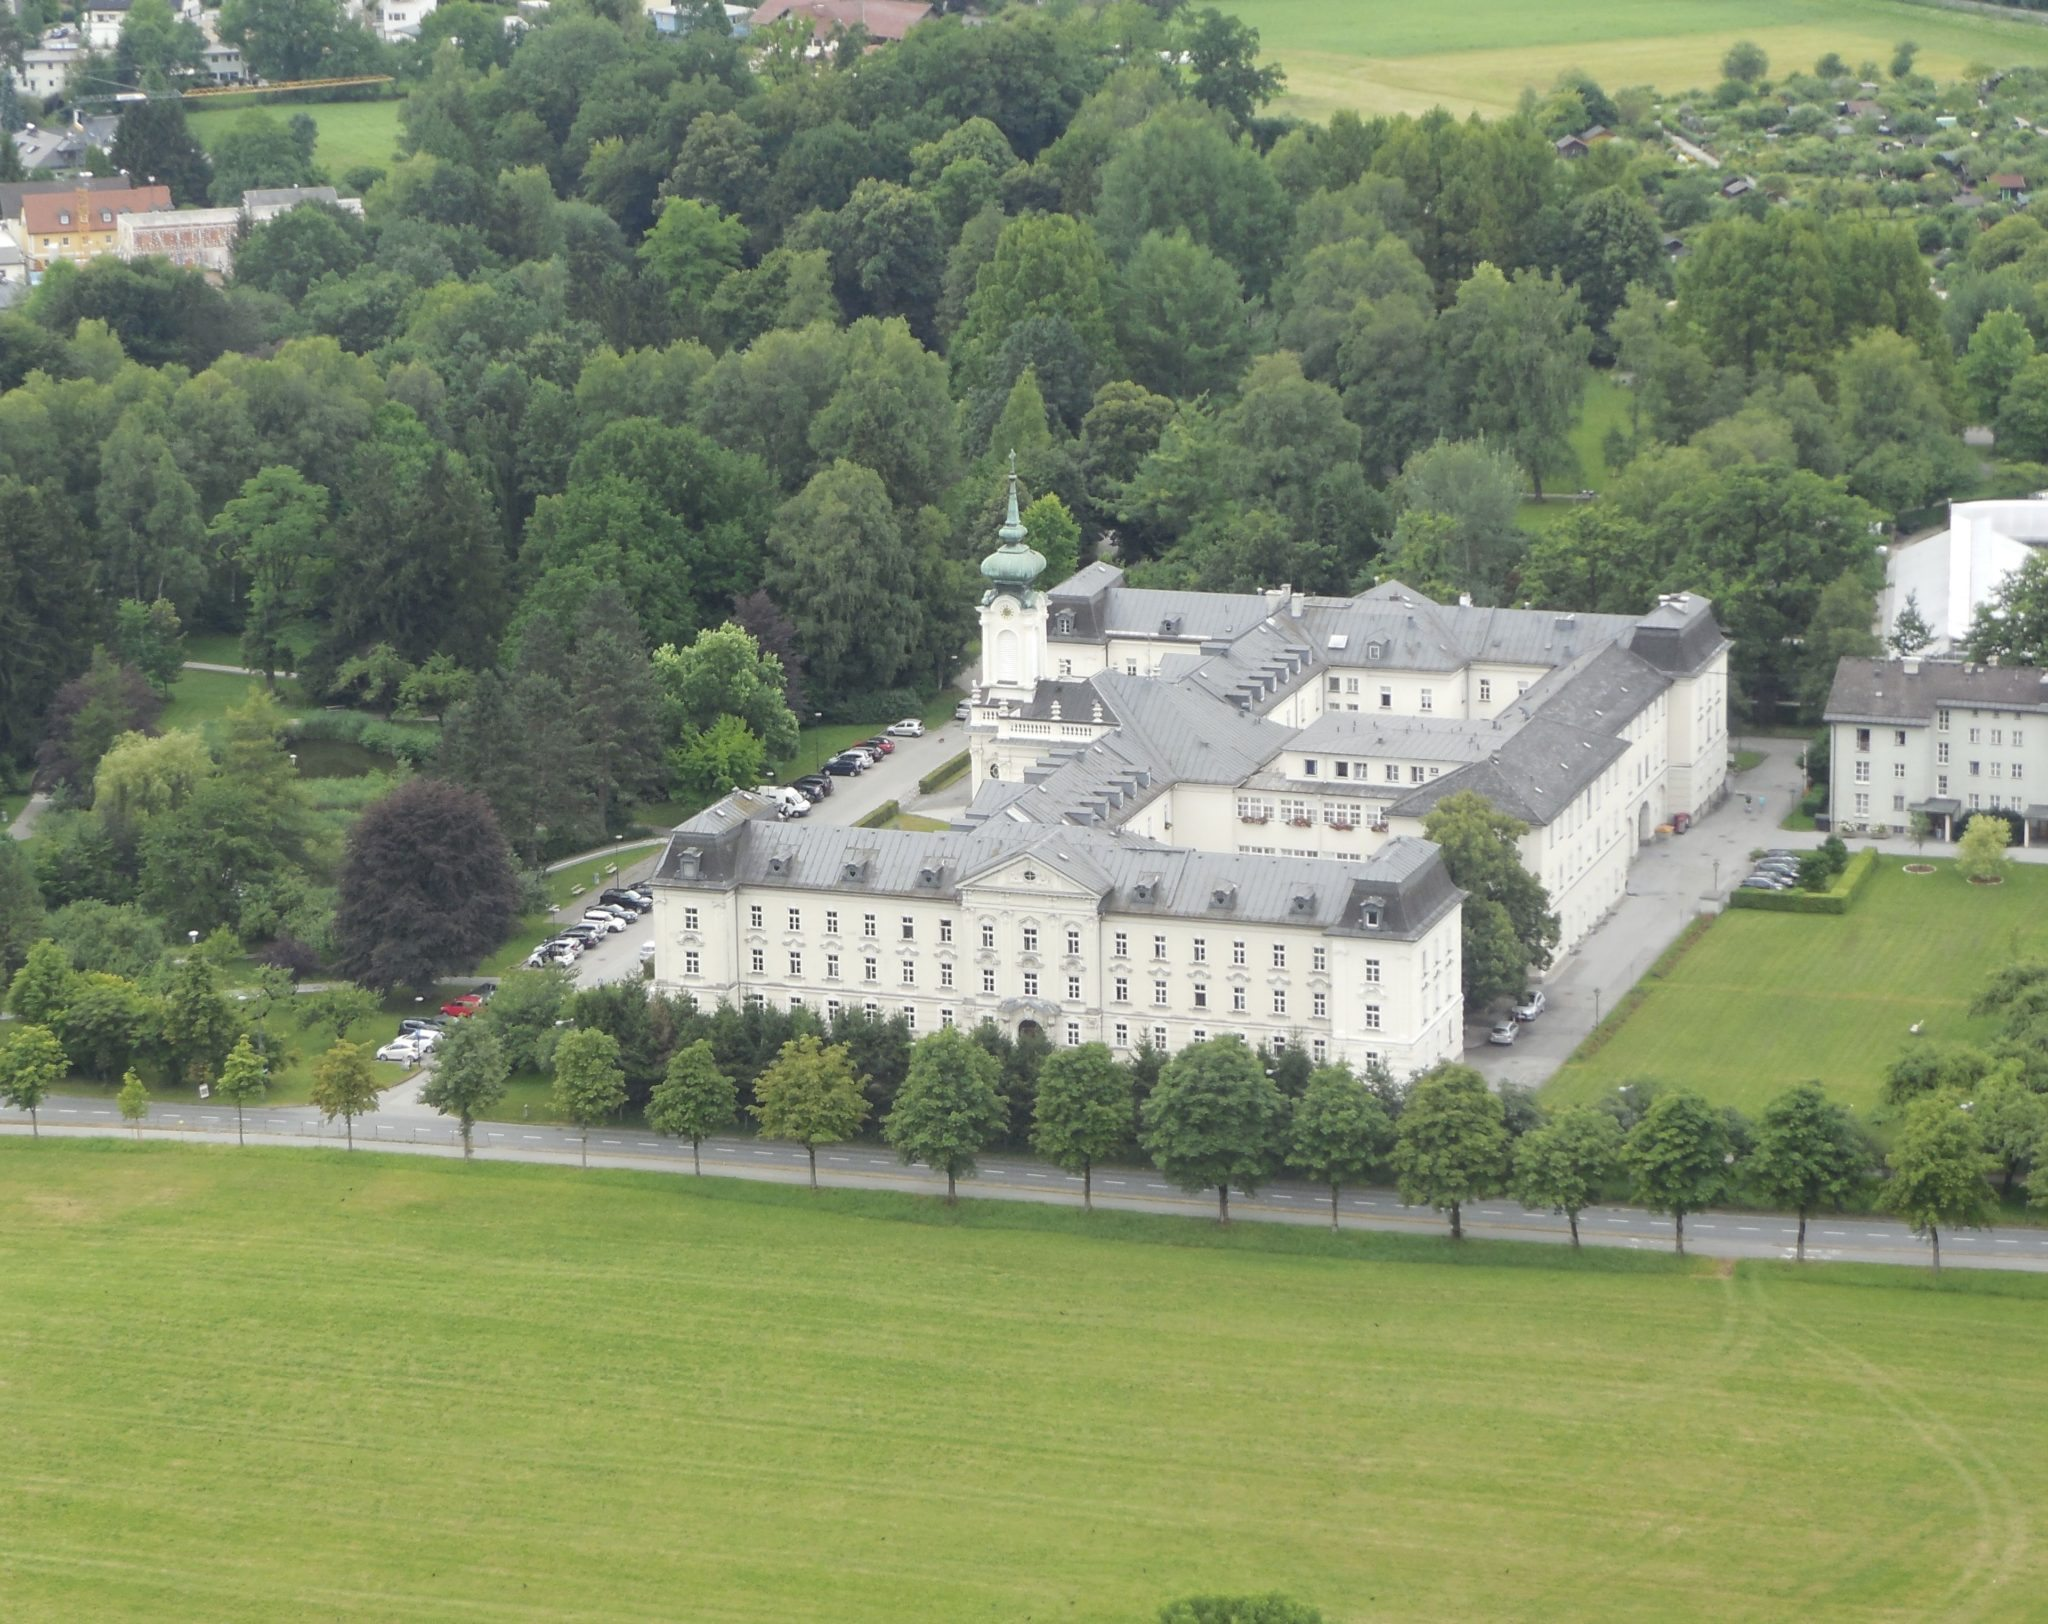 The Astonishing Hohensalzburg Fortress And Castle Looms